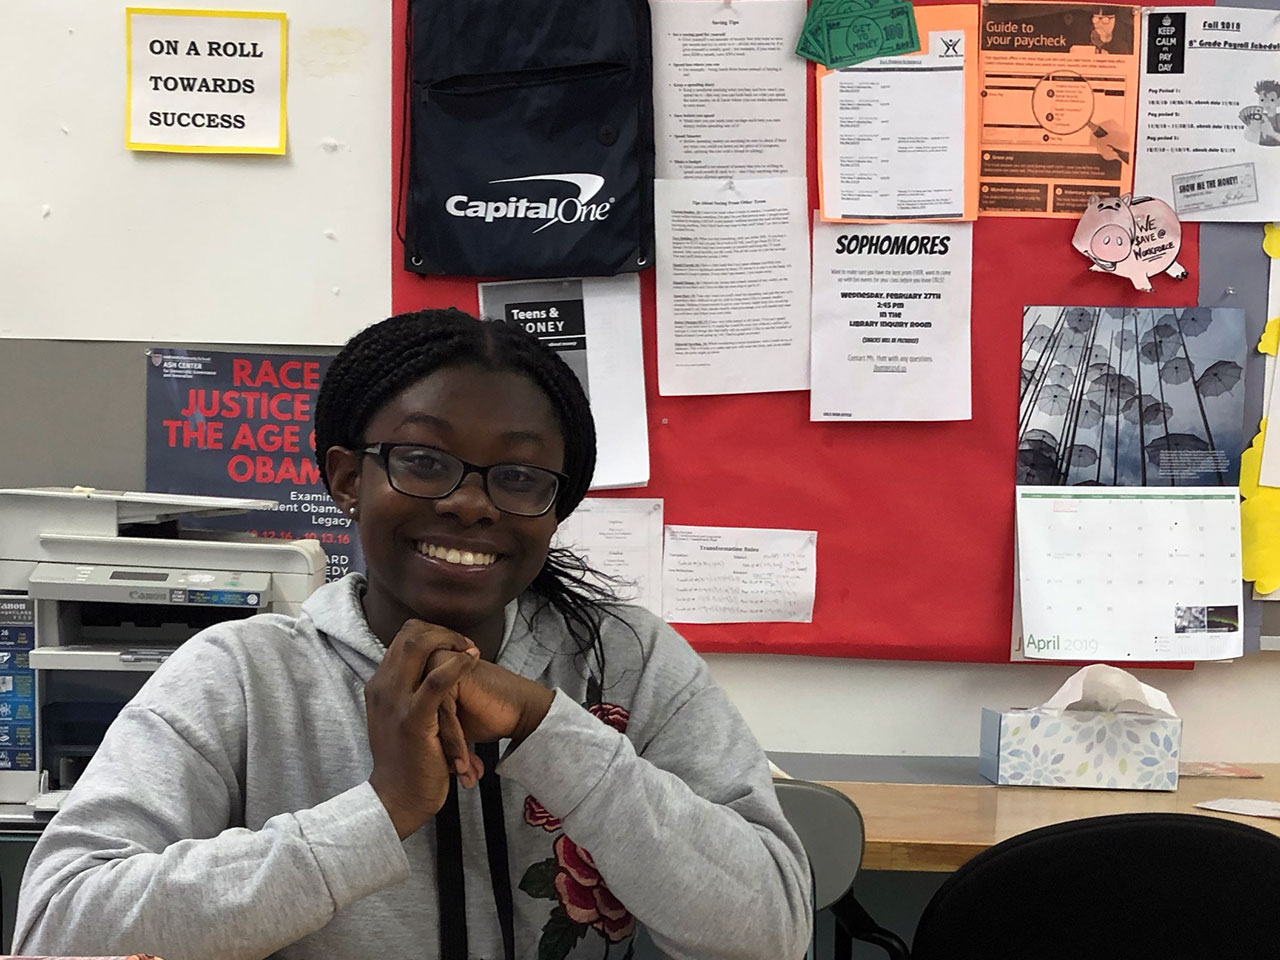 Smiling High School Student Quoted in Article